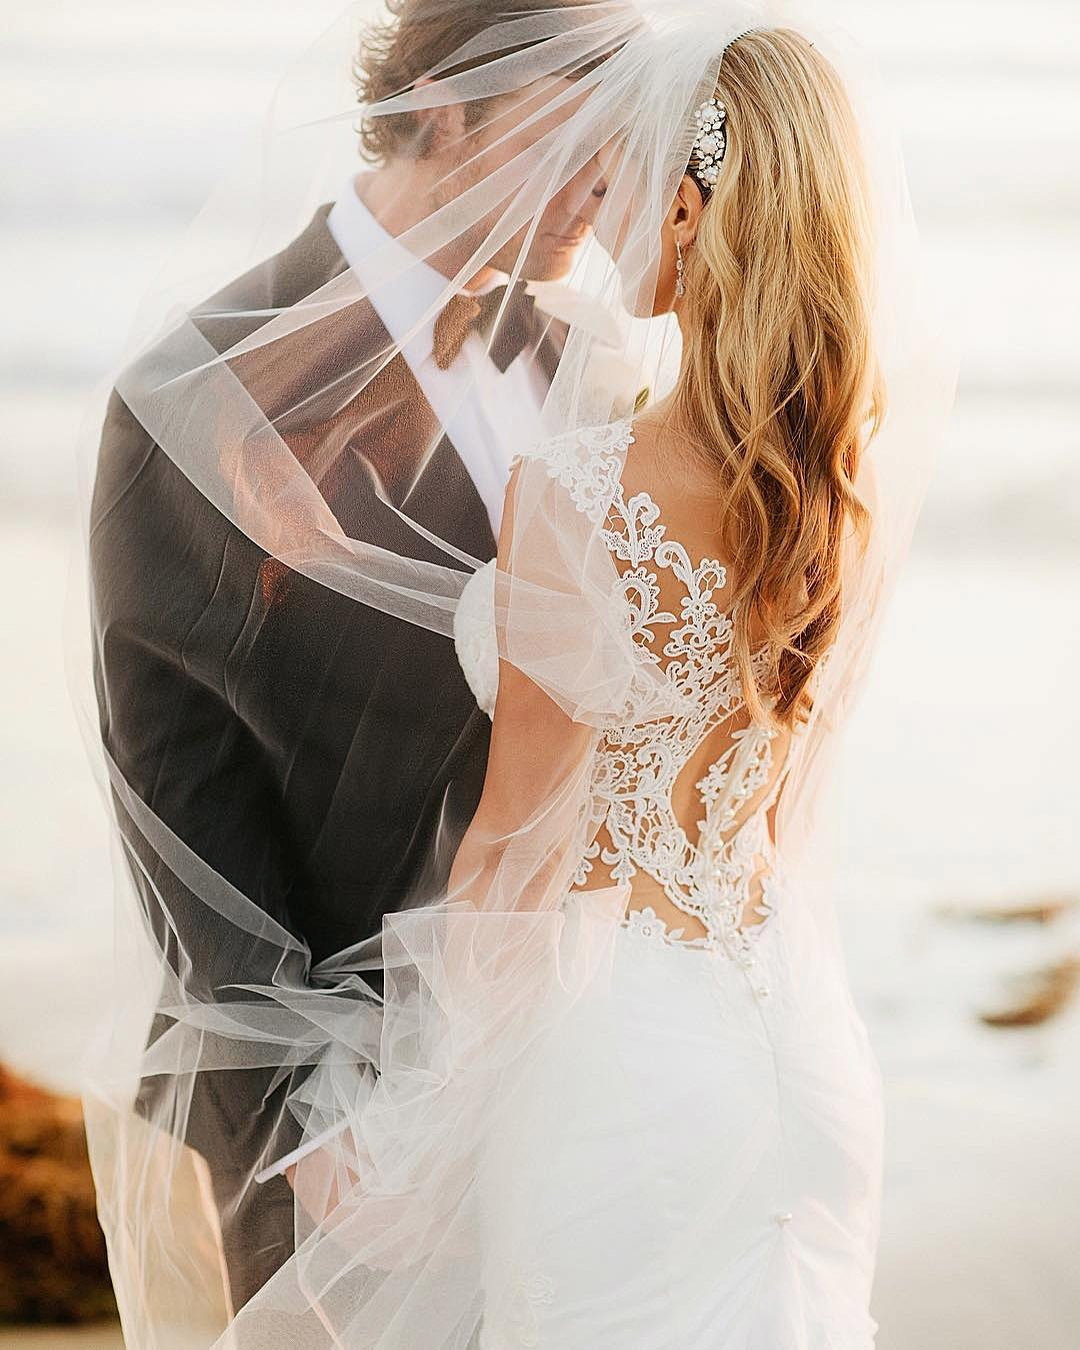 wedding budget newlyweds at the beach photo